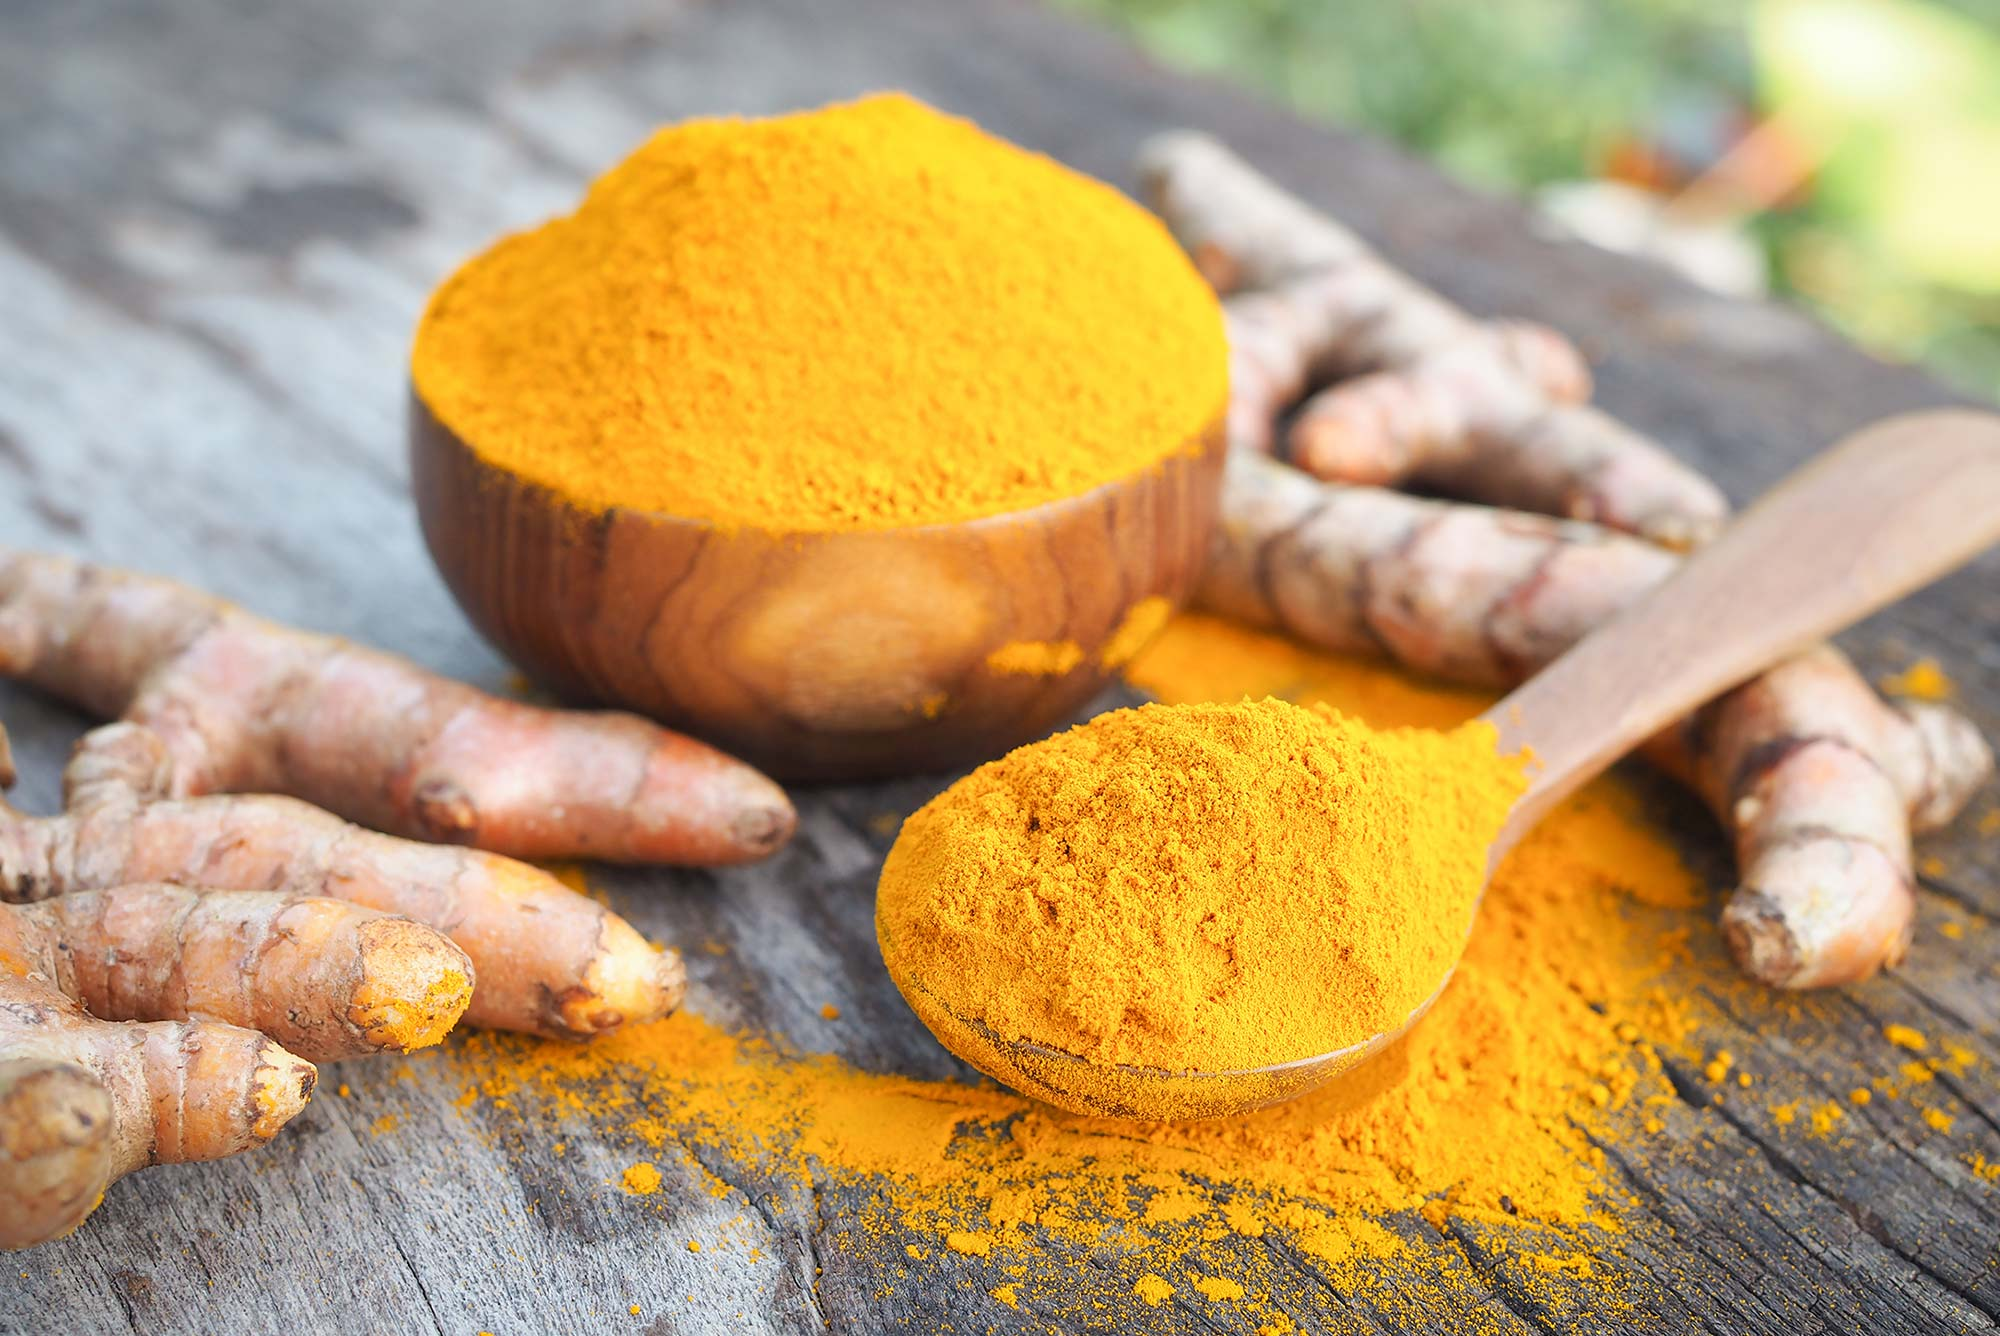 10 Facts about Turmeric